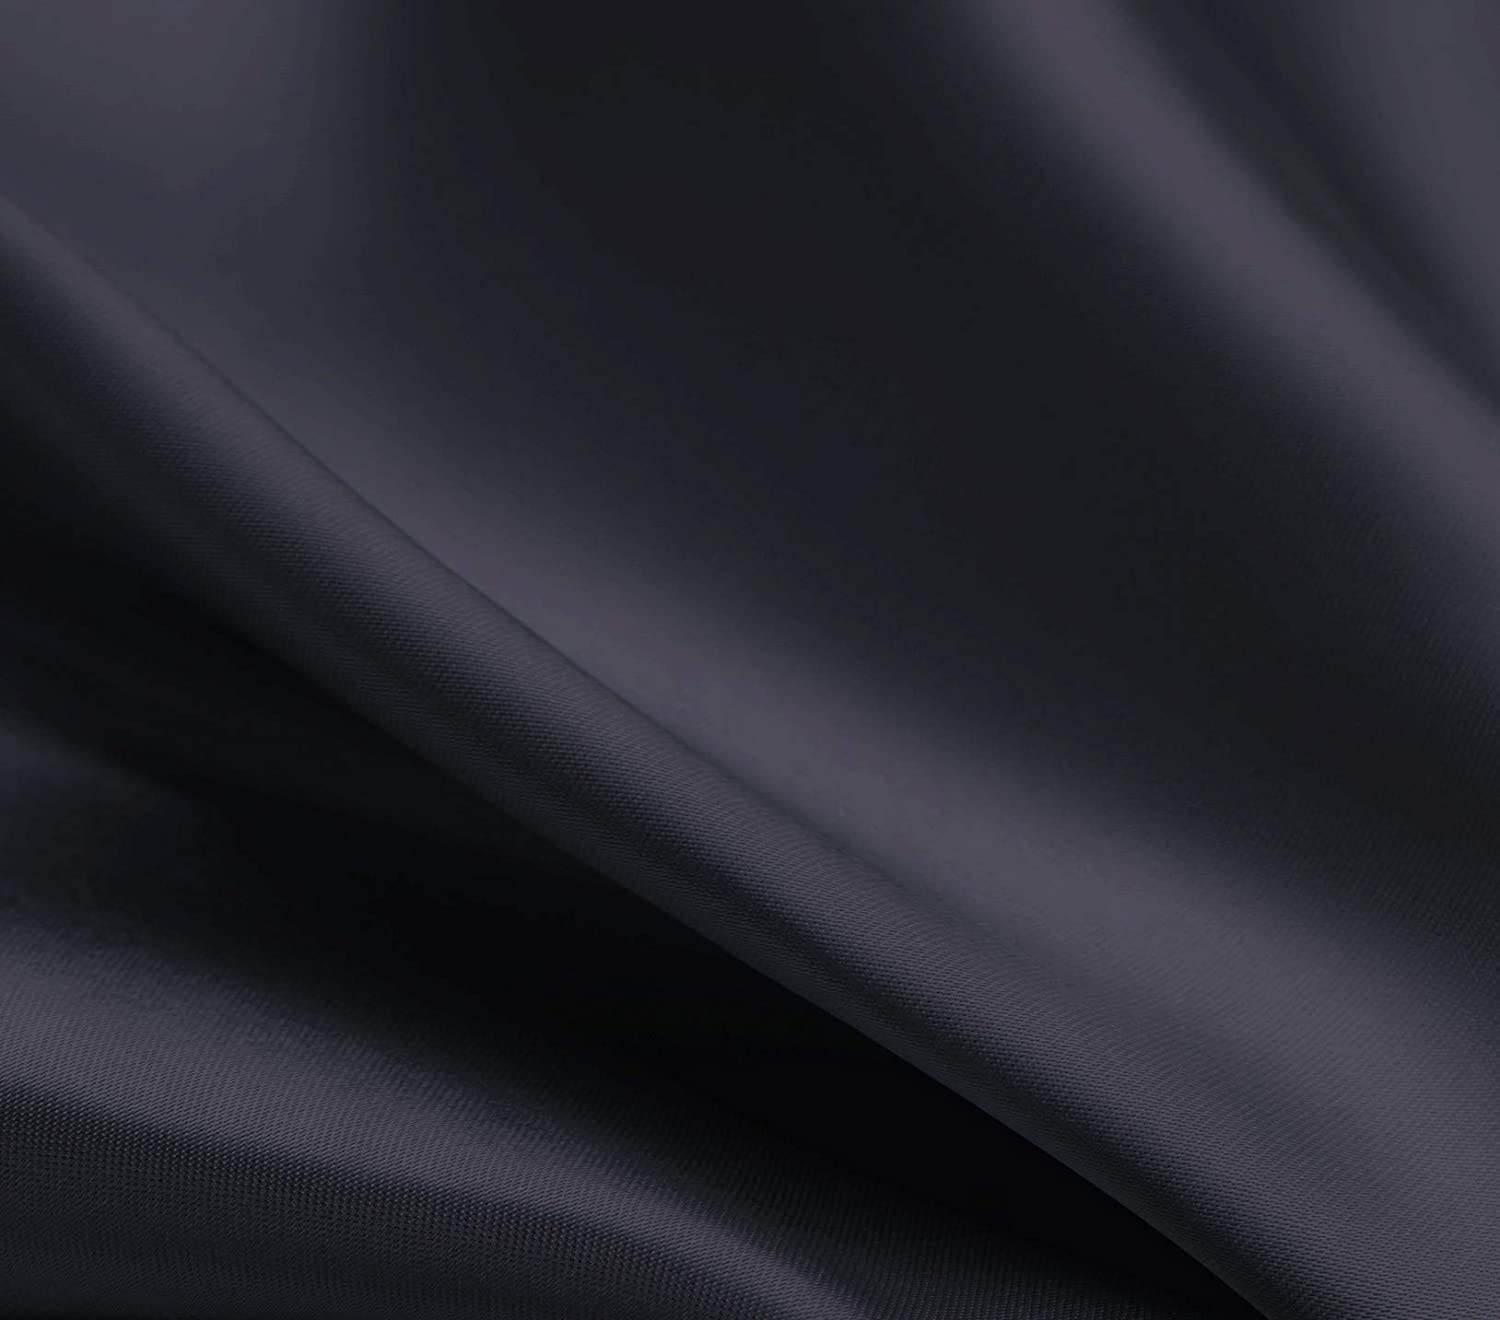 Slip King Size Pillow Cases Set of 2 Black, 20x40 inches Loves cabin Silk Satin Pillowcase for Hair and Skin Satin Cooling Pillow Covers with Envelope Closure